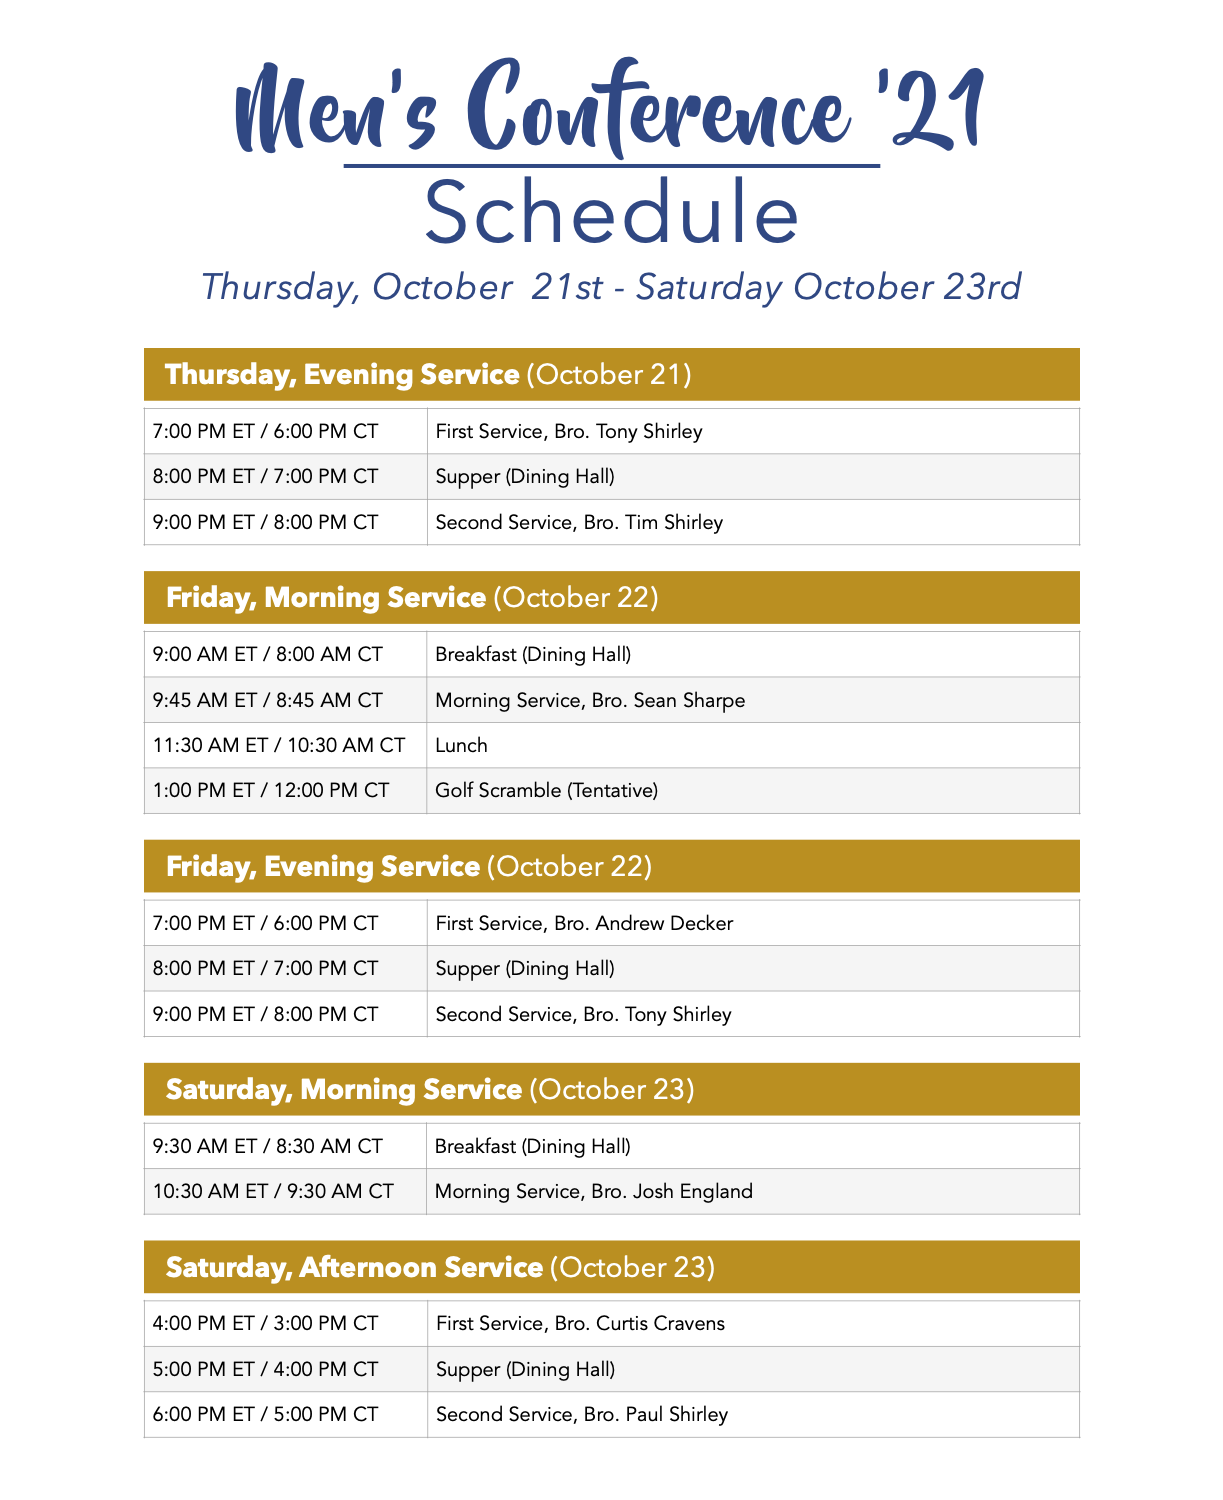 Schedule for the Men's Conference '21